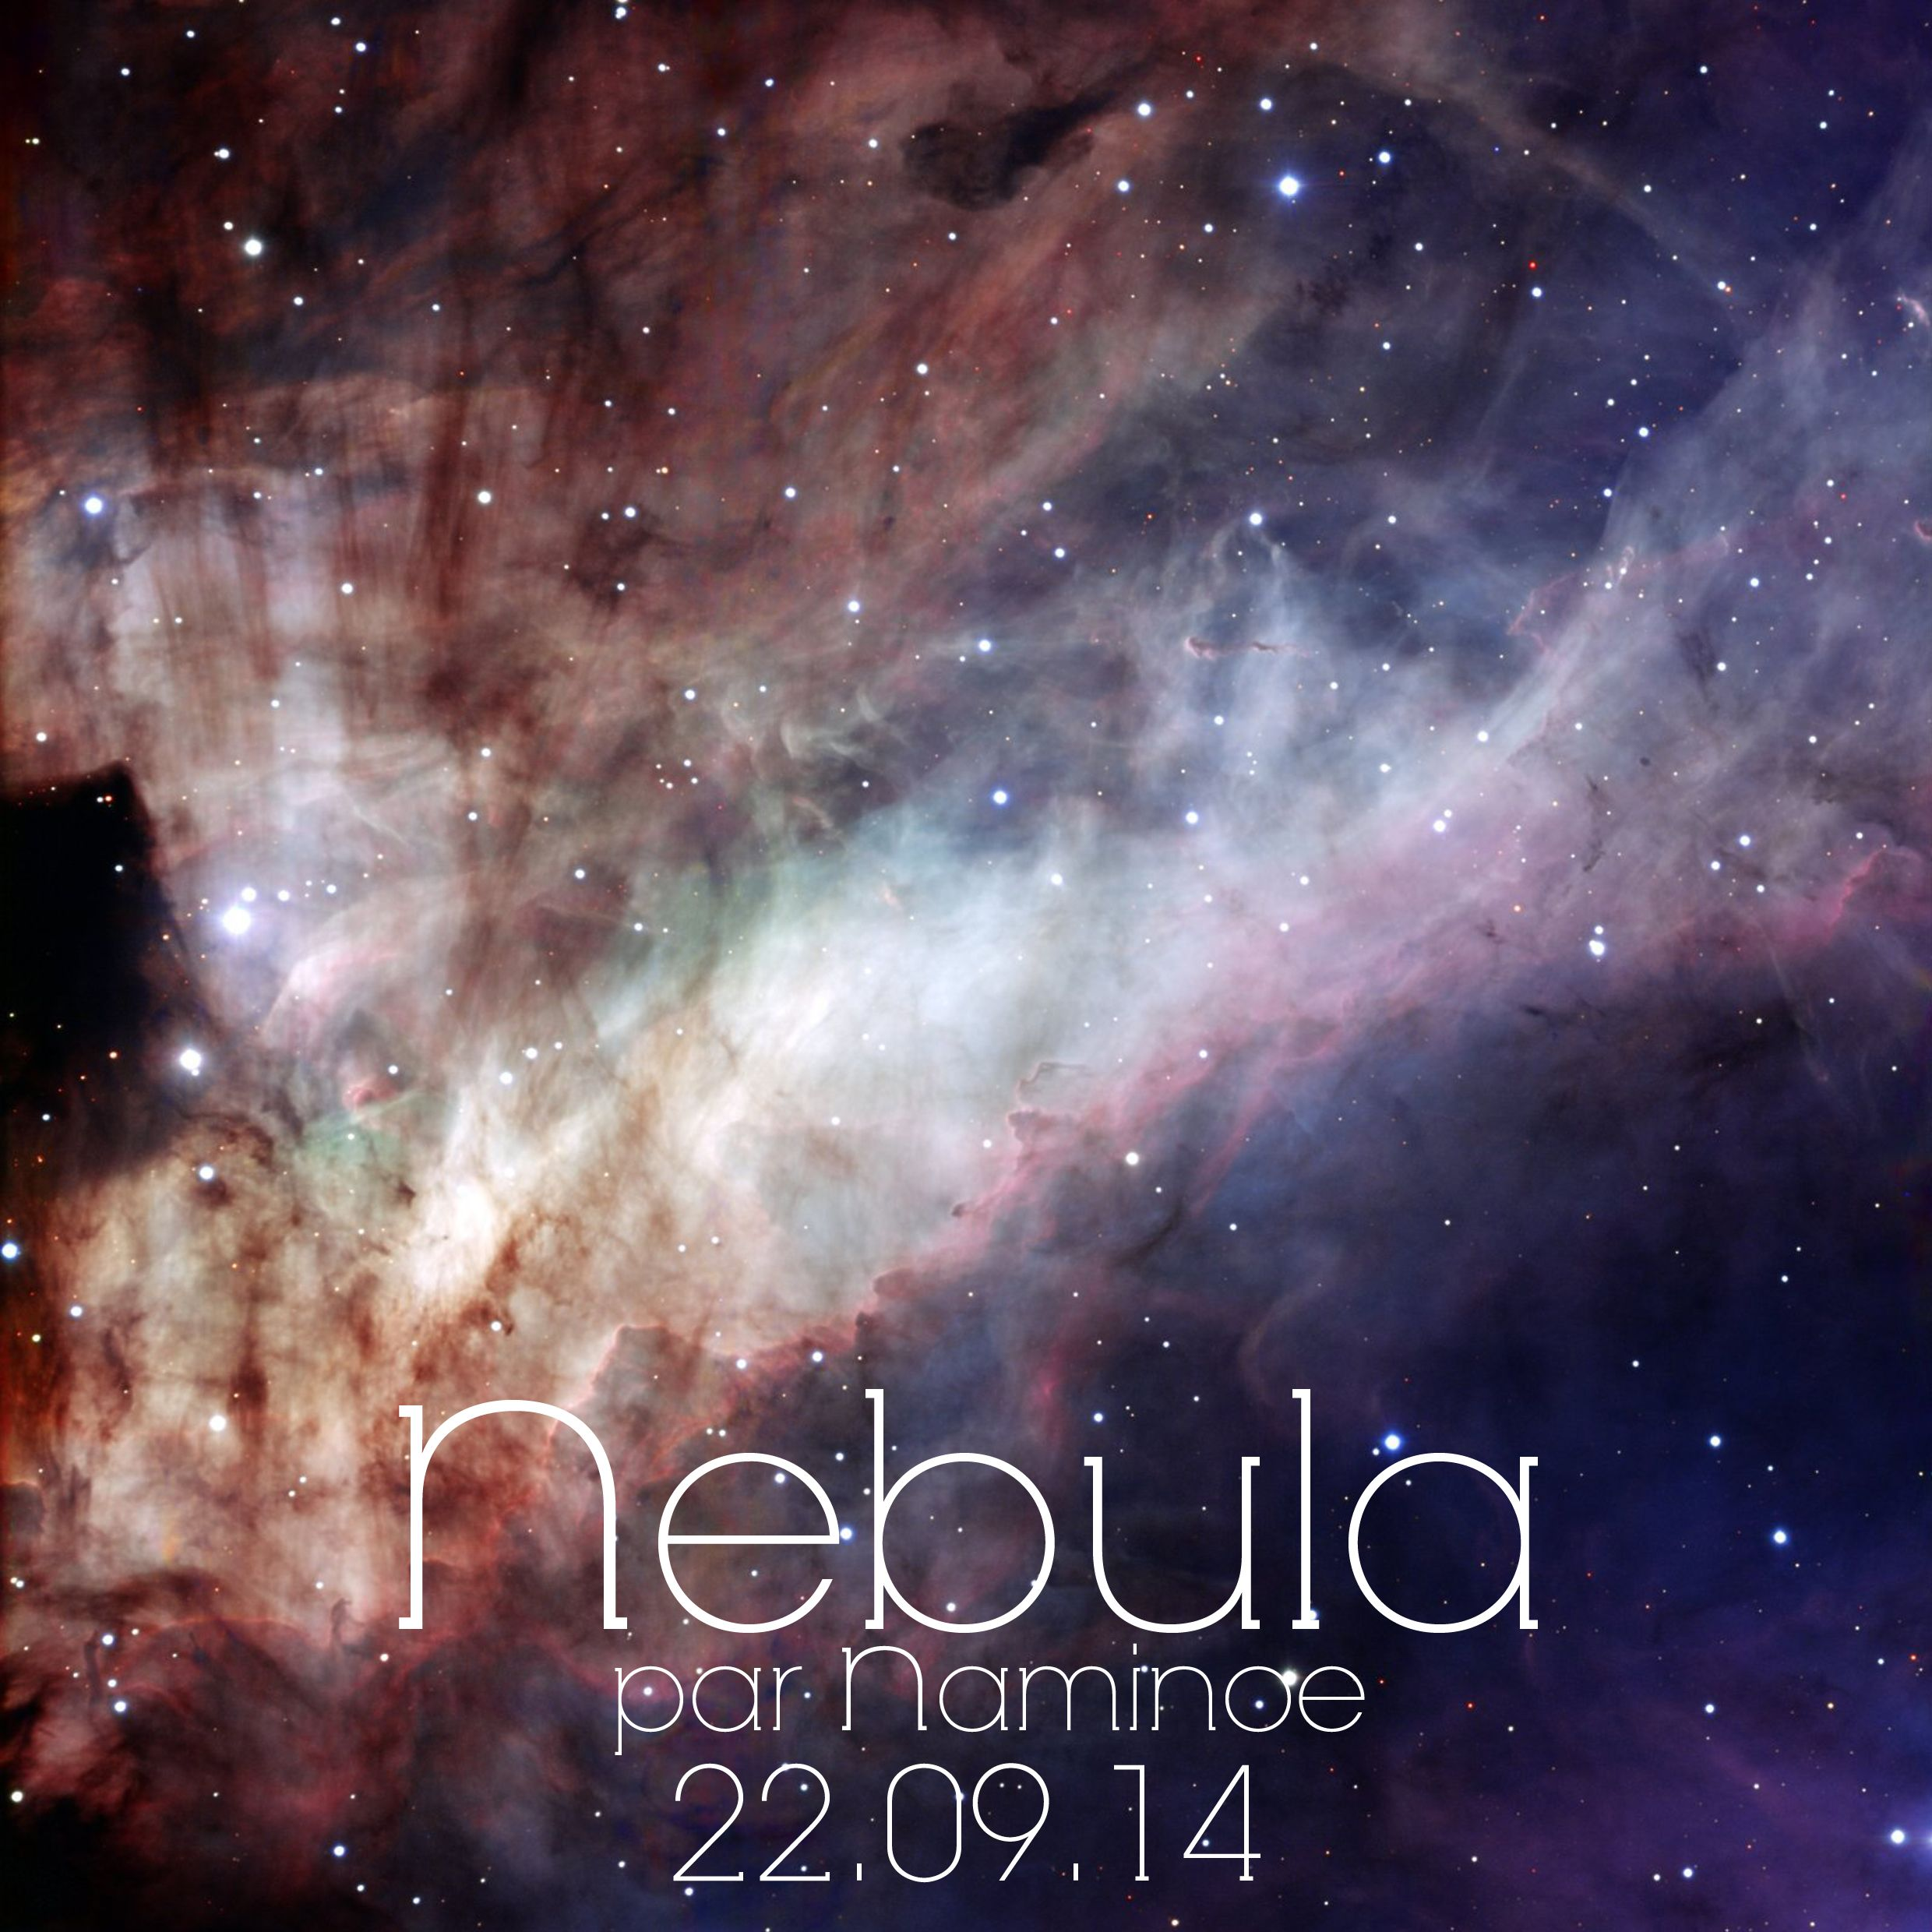 Nébula, la collection Automne/Hiver 14 arrive lundi 22/09/14 sur http://naminoe.fr/  ! #soon #newcollection #winter #jewel #nebula #galaxie #etoiles